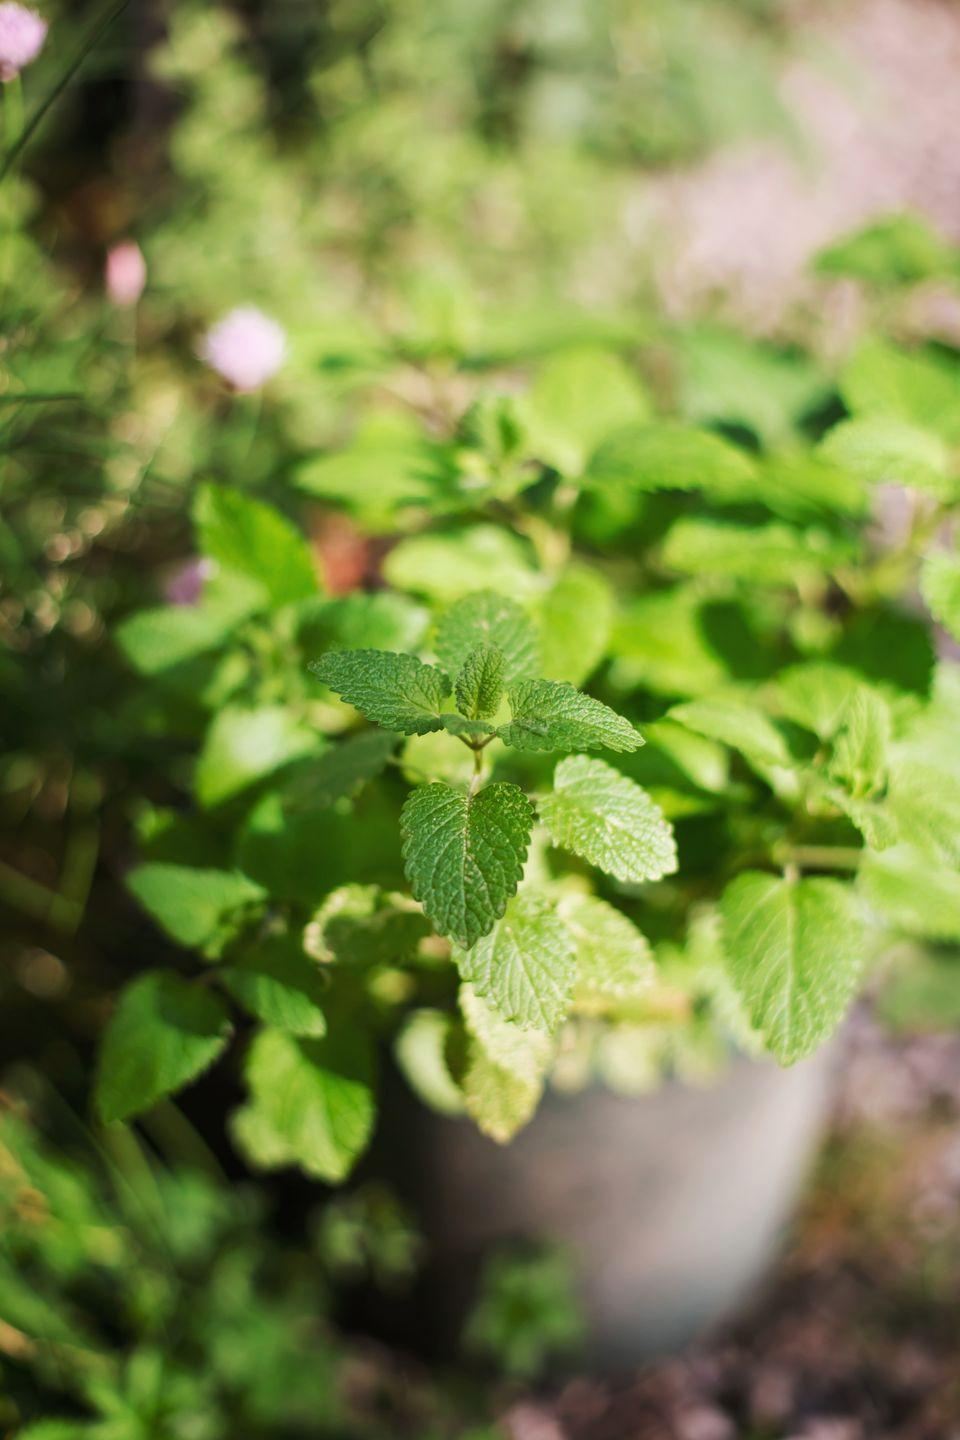 """<p>Because mint grows almost like a weed, you'll want to plant it in a container first. Then, submerge the entire pot to ground level to contain its growth. Mint comes in many different flavors including spearmint, chocolate mint, and apple mint. It's excellent in iced tea, cocktails, and baked goods.</p><p><a class=""""link rapid-noclick-resp"""" href=""""https://www.amazon.com/Sow-Right-Seeds-Instructions-Gardening/dp/B07VXS9QR9/ref=asc_df_B07VXS9QR9/?tag=syn-yahoo-20&linkCode=df0&hvadid=385169514948&hvadid=385169514948&hvnetw=g&hvnetw=g&hvrand=3922437393487316408&hvrand=3922437393487316408&hvdev=c&hvdev=c&hvlocphy=9051781&hvlocphy=9051781&hvtargid=pla-838344744850&hvtargid=pla-838344744850&psc=1&adgrpid=80078690138&ascsubtag=%5Bartid%7C2164.g.36533467%5Bsrc%7Cyahoo-us"""" rel=""""nofollow noopener"""" target=""""_blank"""" data-ylk=""""slk:SHOP NOW"""">SHOP NOW</a></p>"""